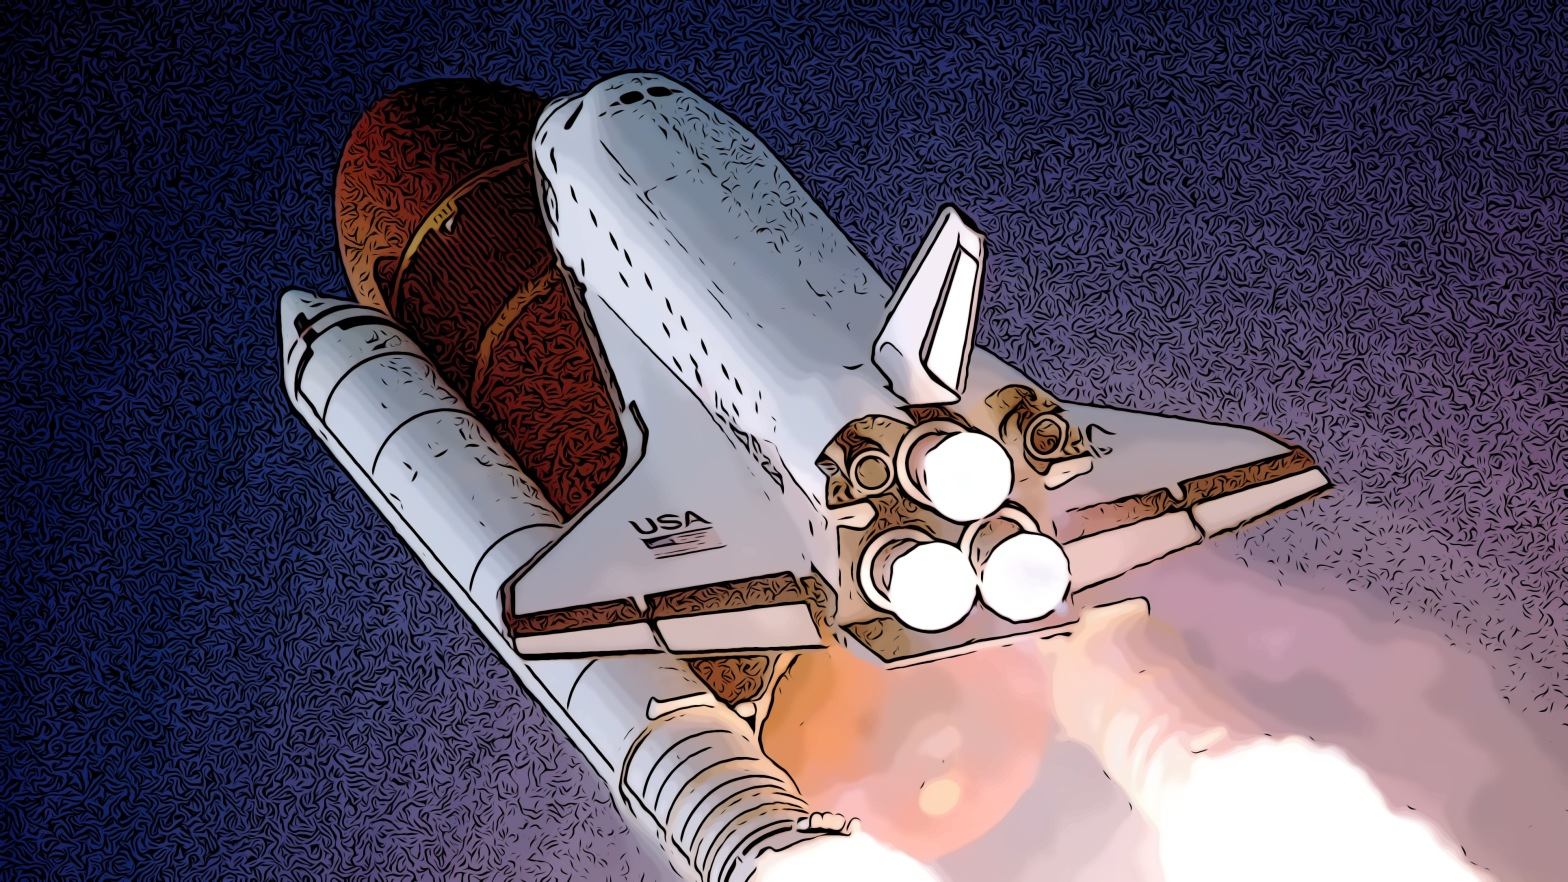 Rocket header comic